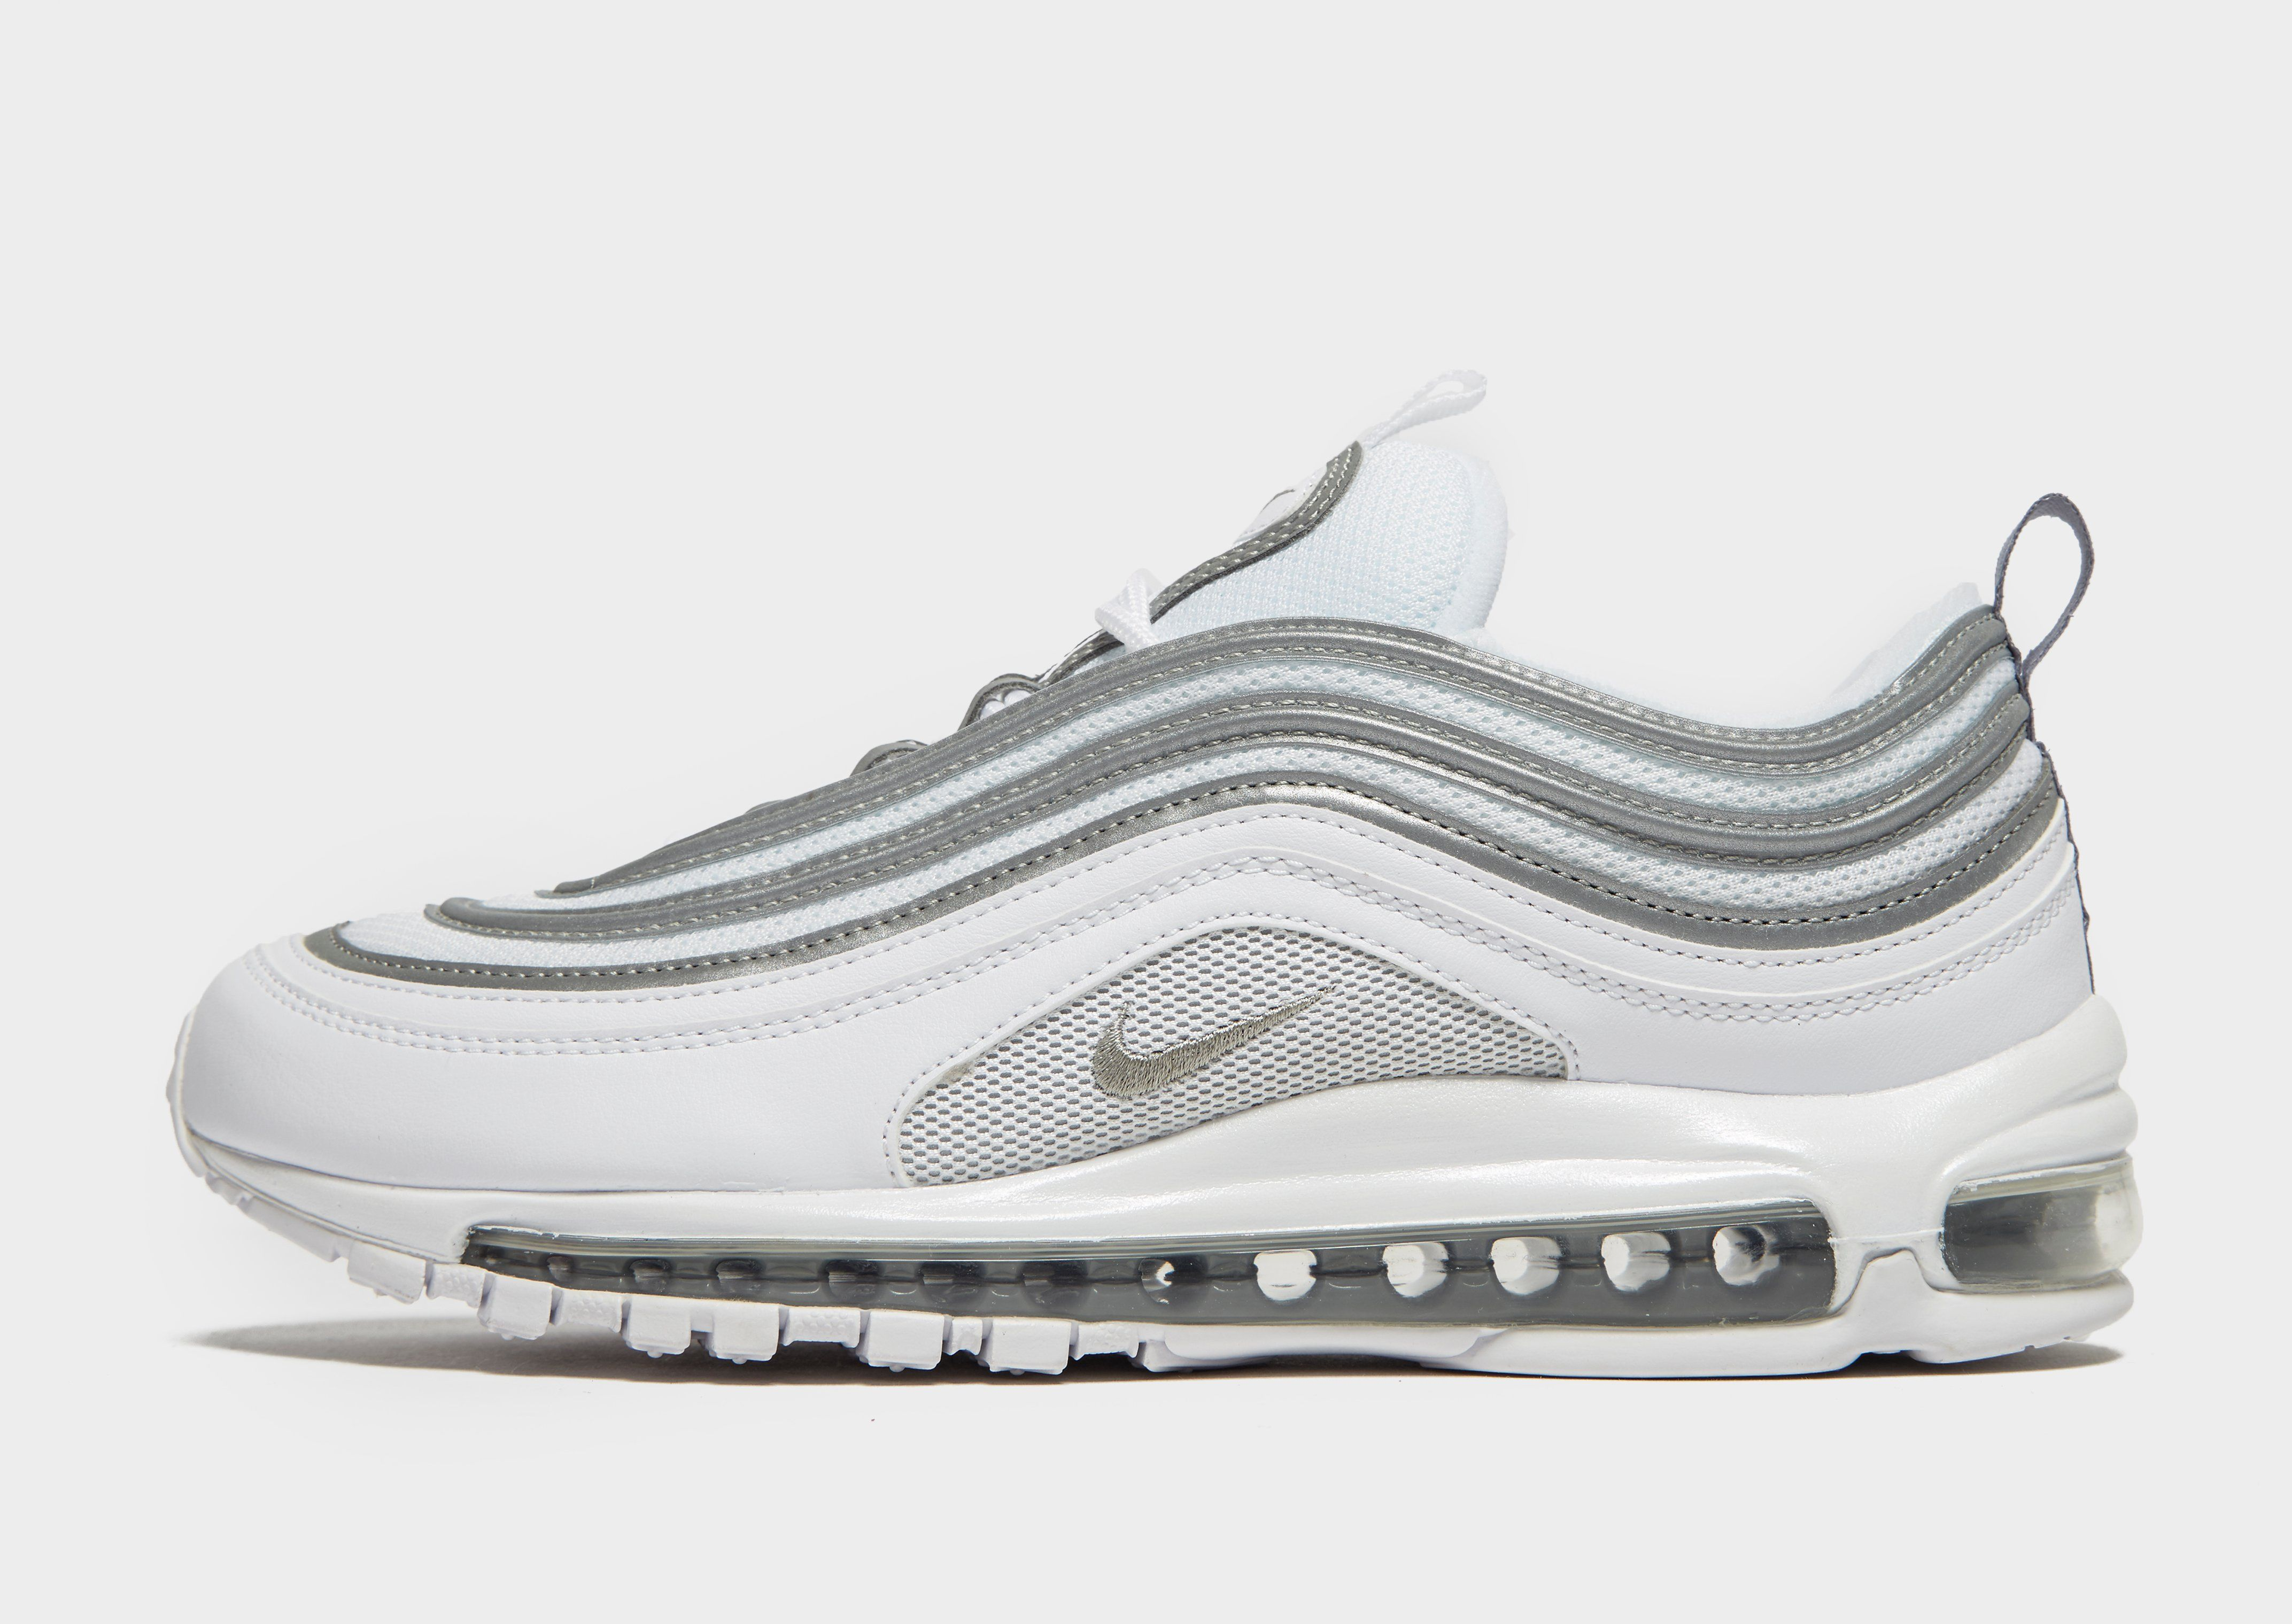 new concept bf8d7 d42b7 Nike Air Max 97 Essential | JD Sports Ireland